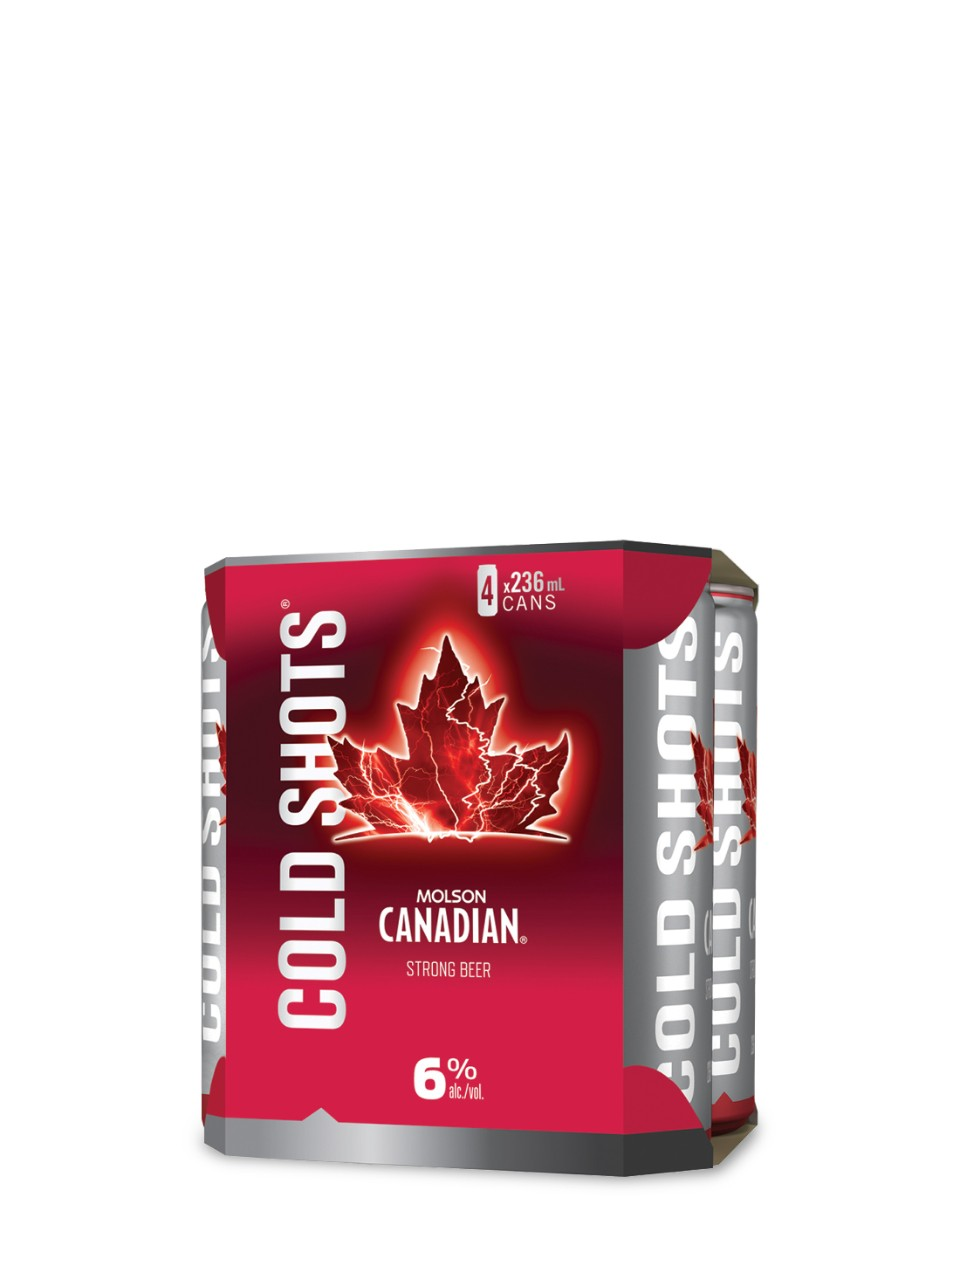 Molson Canadian Cold Shots 6.0 from LCBO